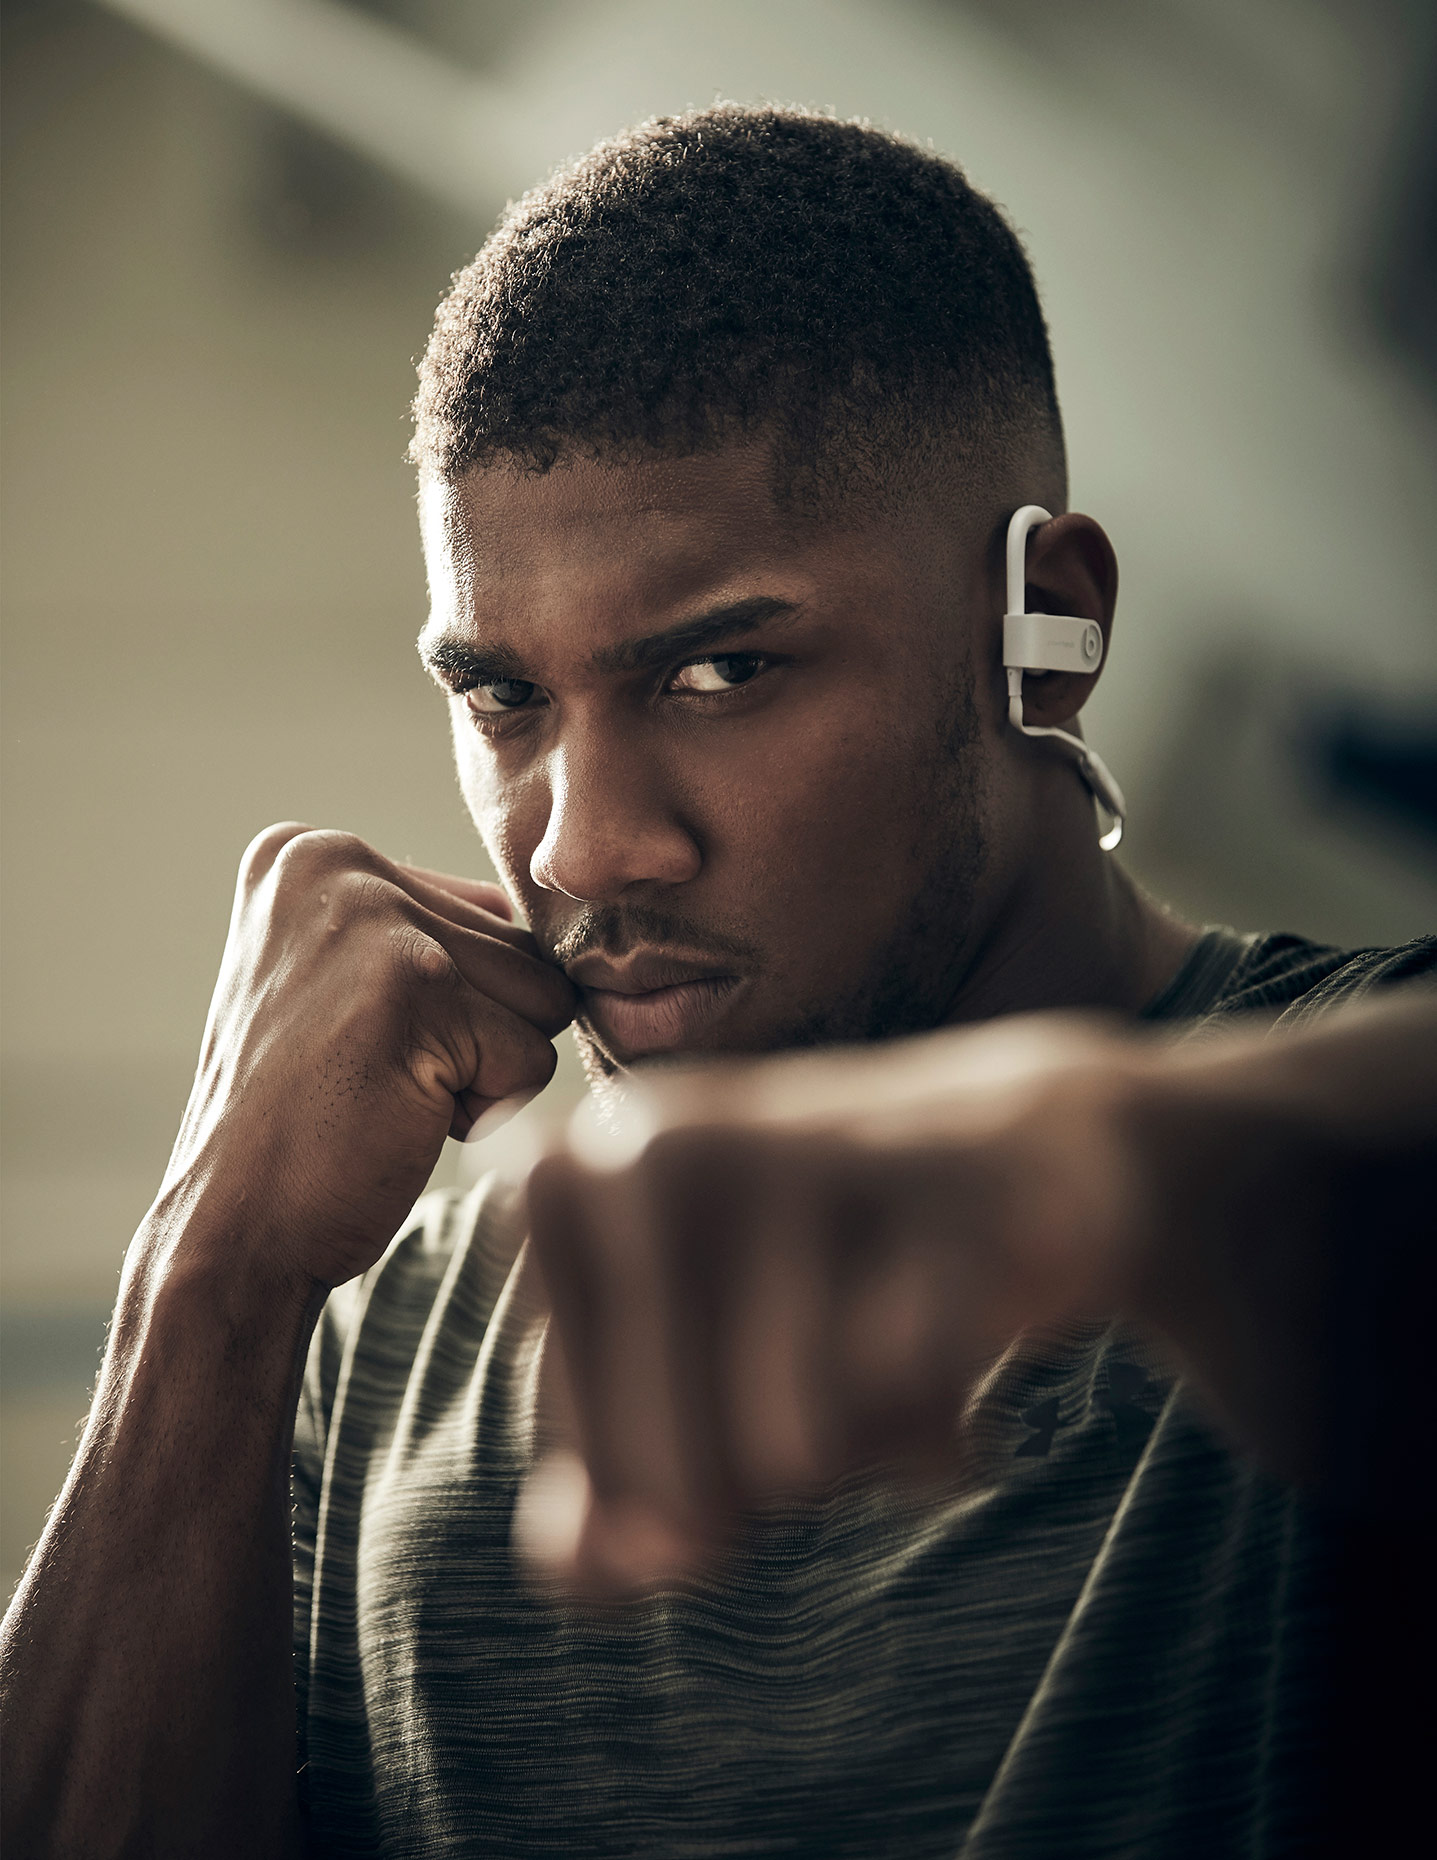 Anthony-Joshua_0355